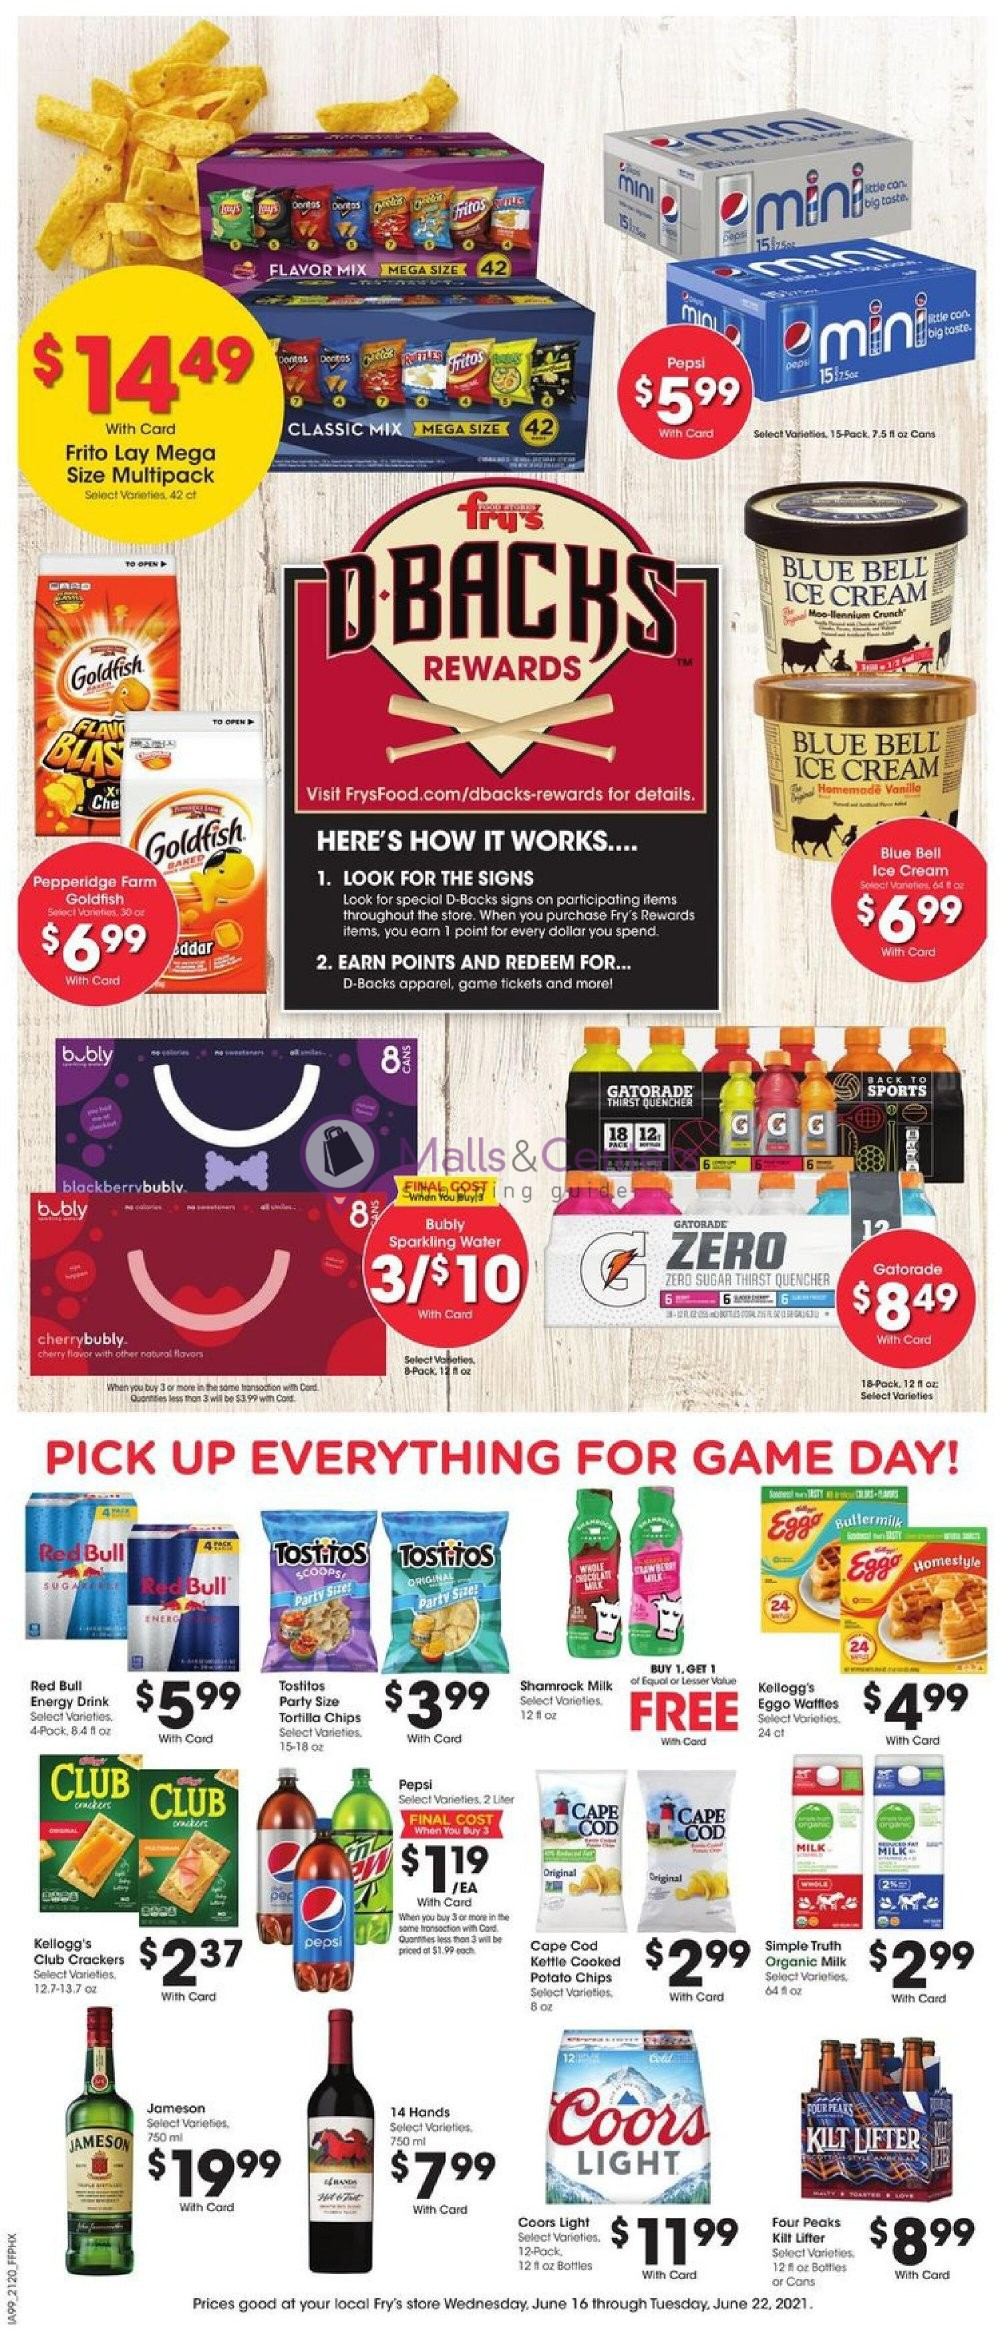 weekly ads Fry's Food Stores - page 1 - mallscenters.com